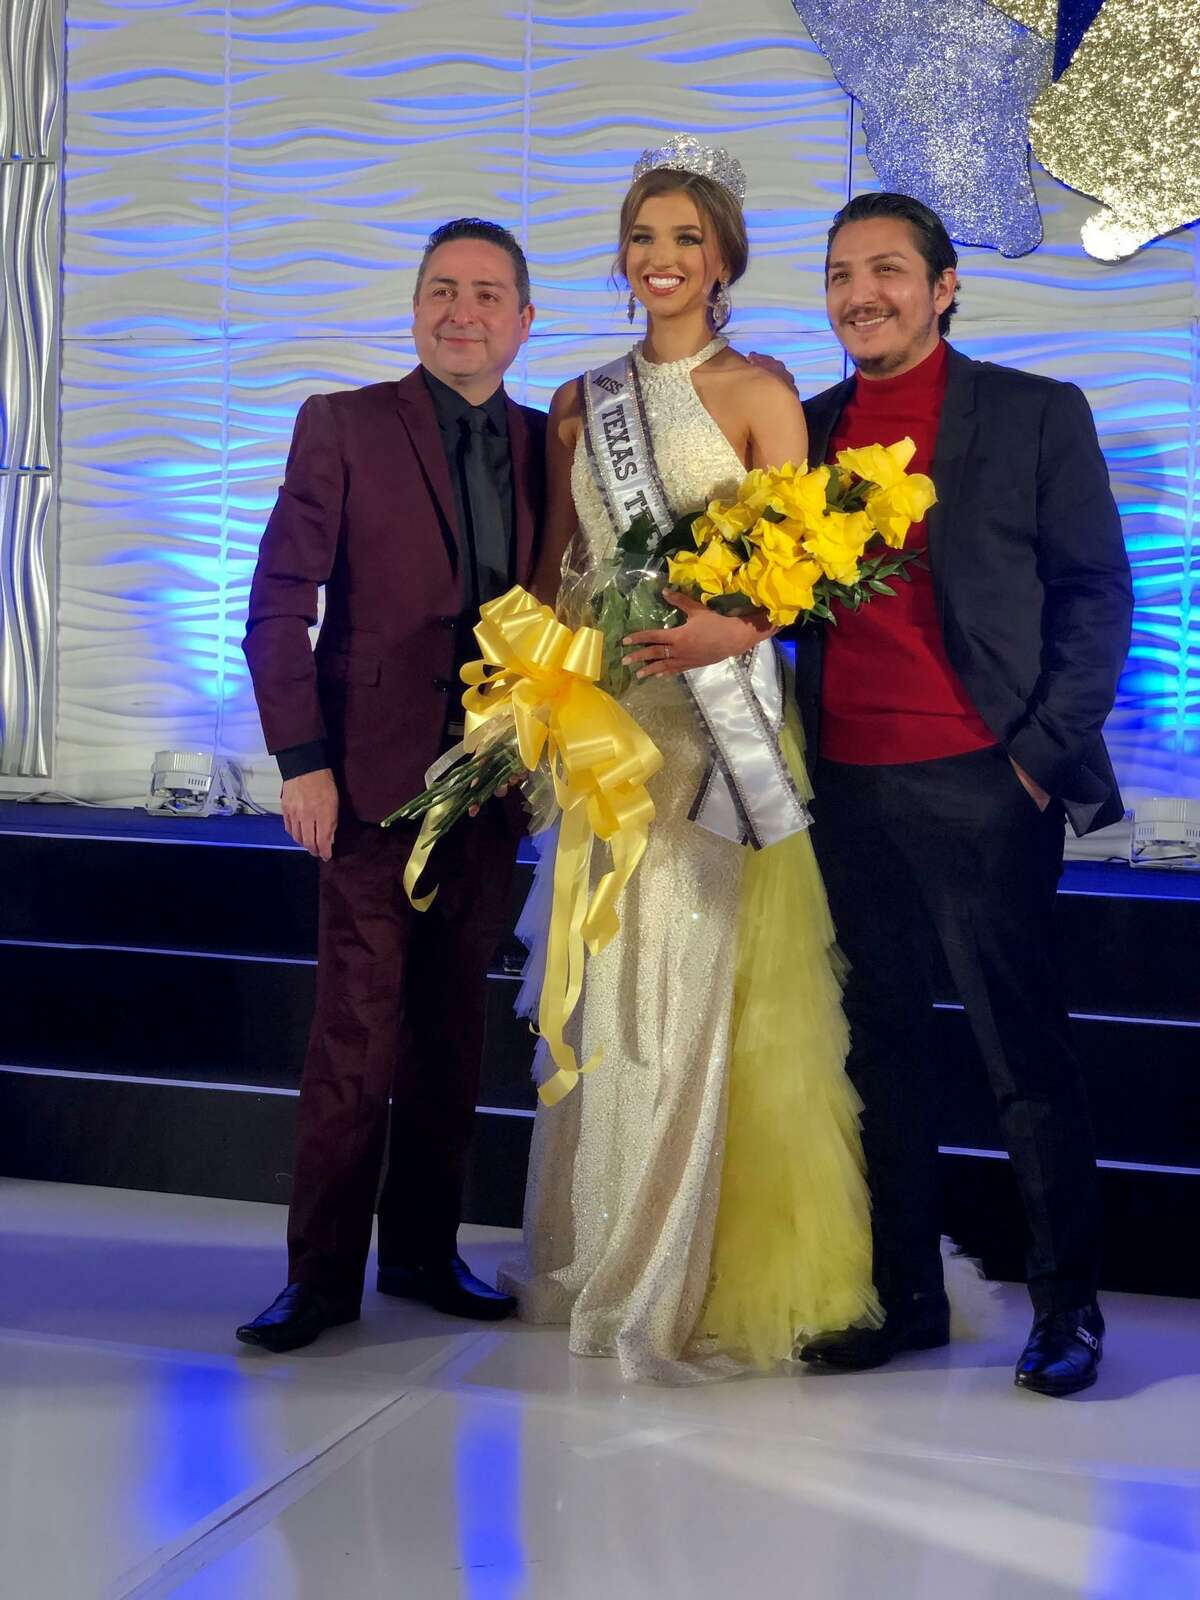 Roel and Saul Gonzalez with current Miss Texas Teen USA Anissa Mendez. She will be turning in her crown this weekend.